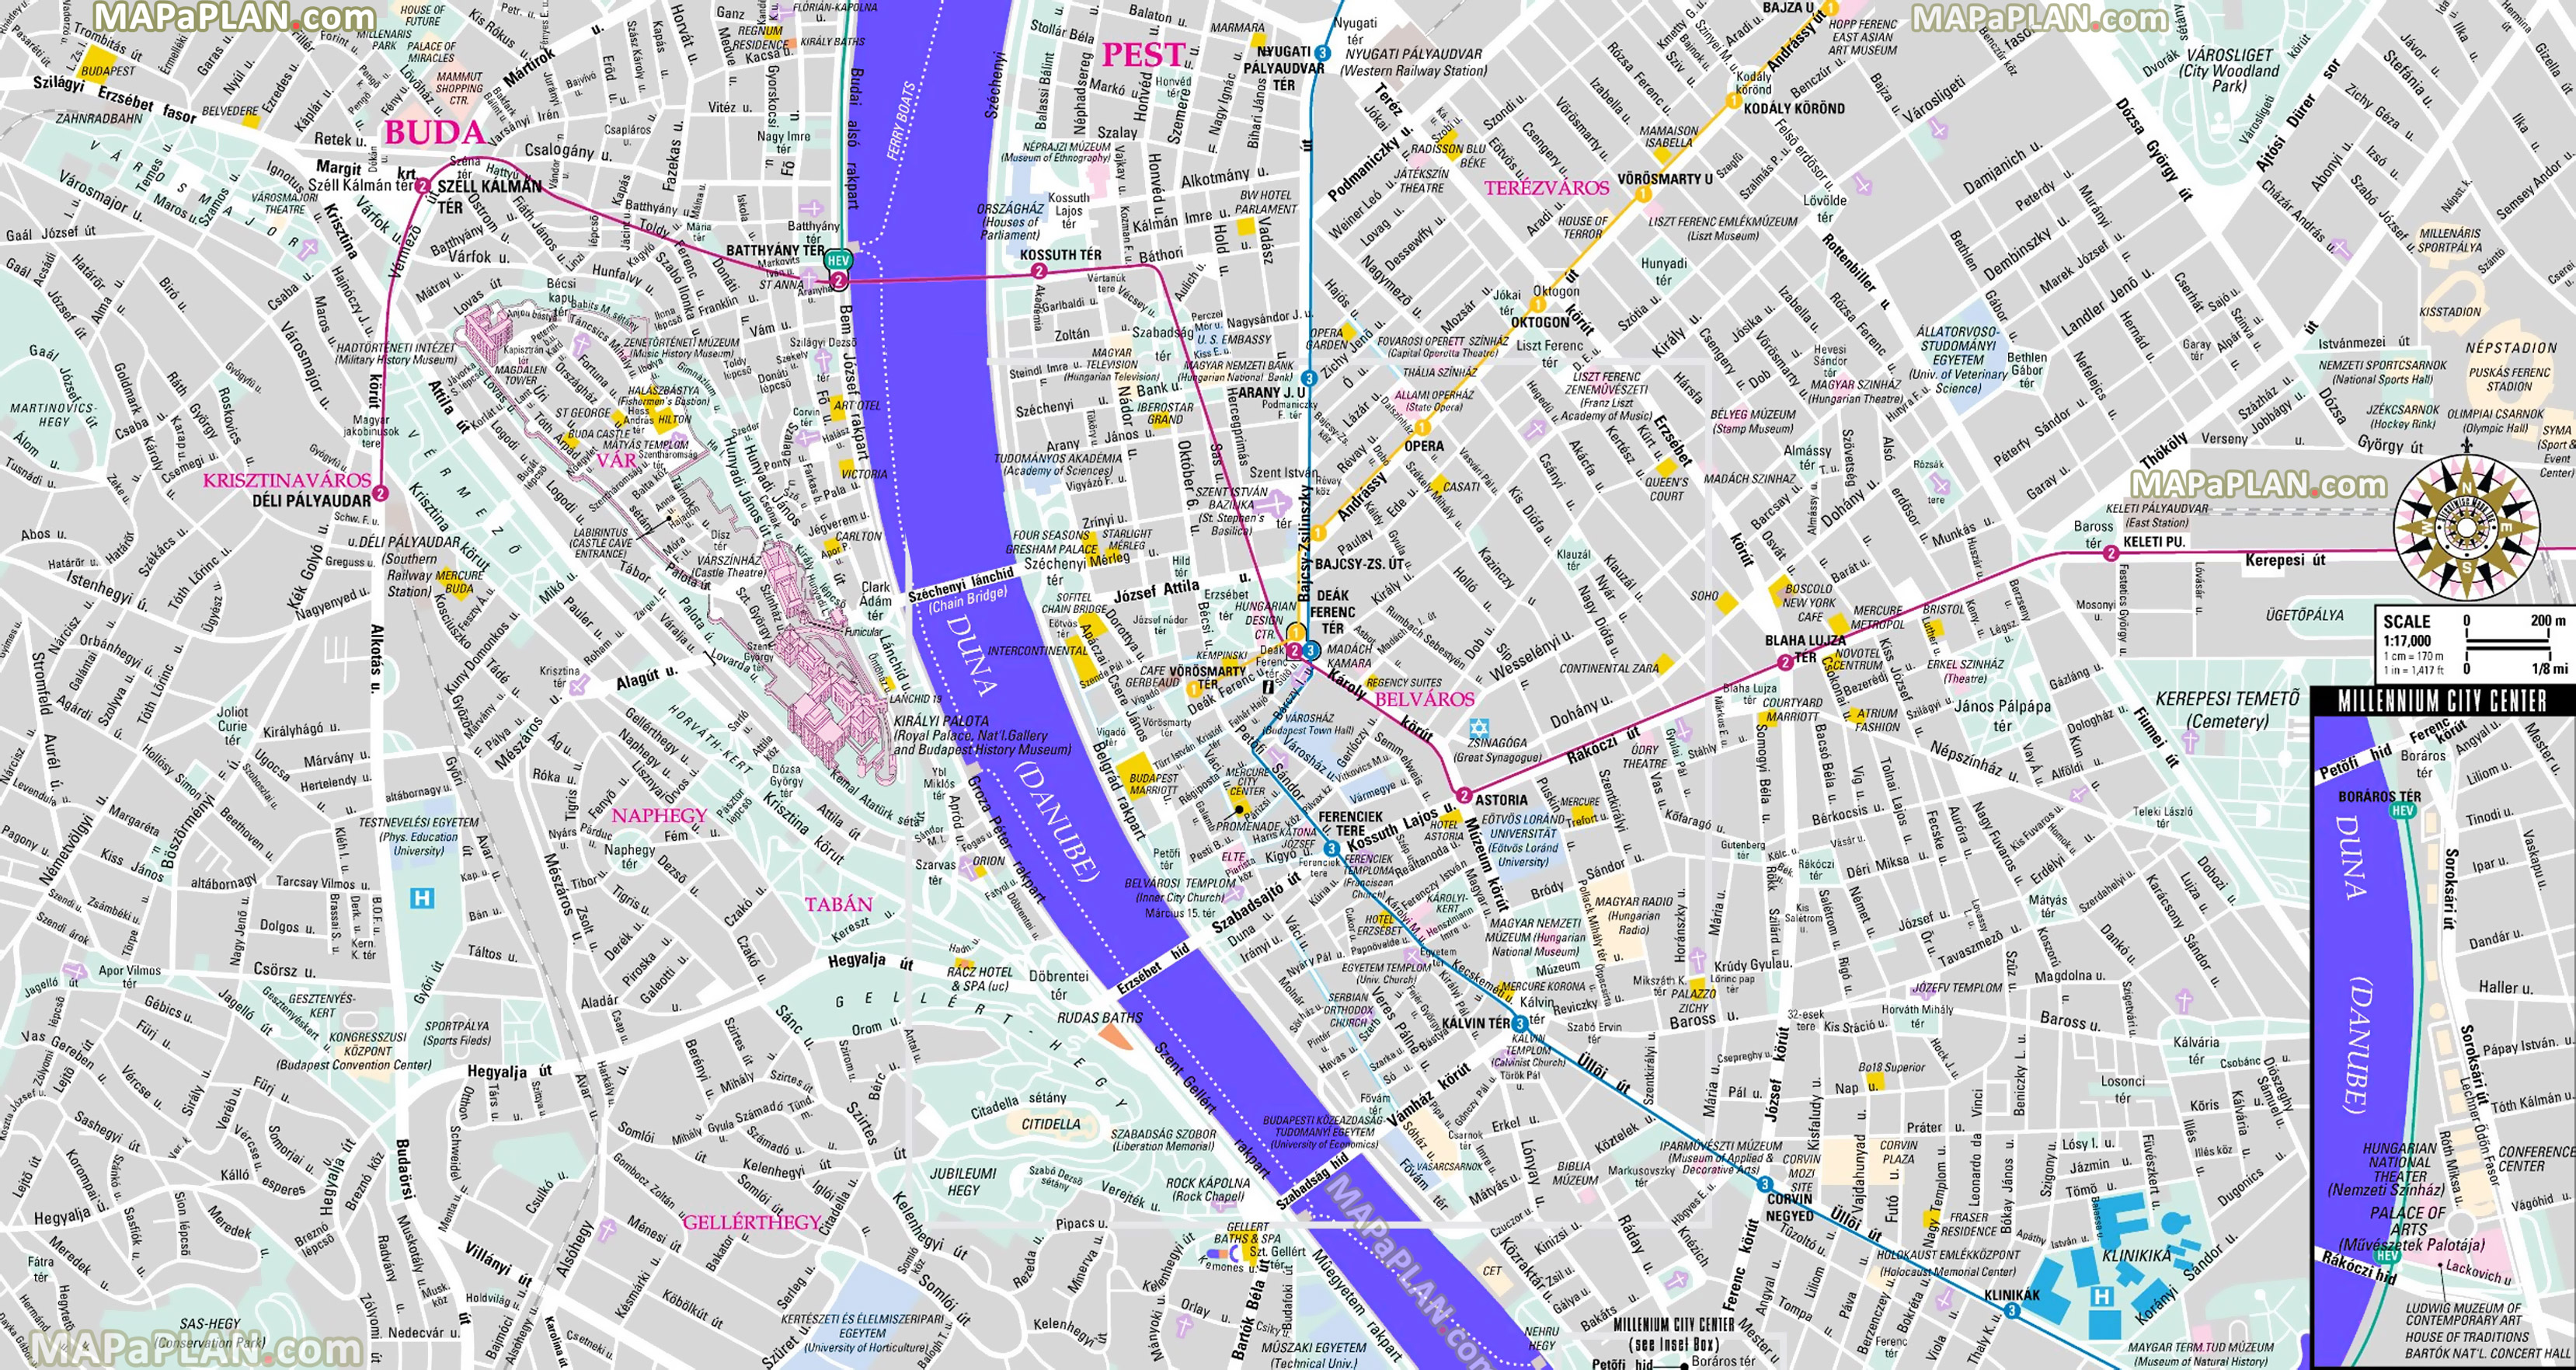 Budapest Maps - Top Tourist Attractions - Free, Printable City - Printable City Street Maps